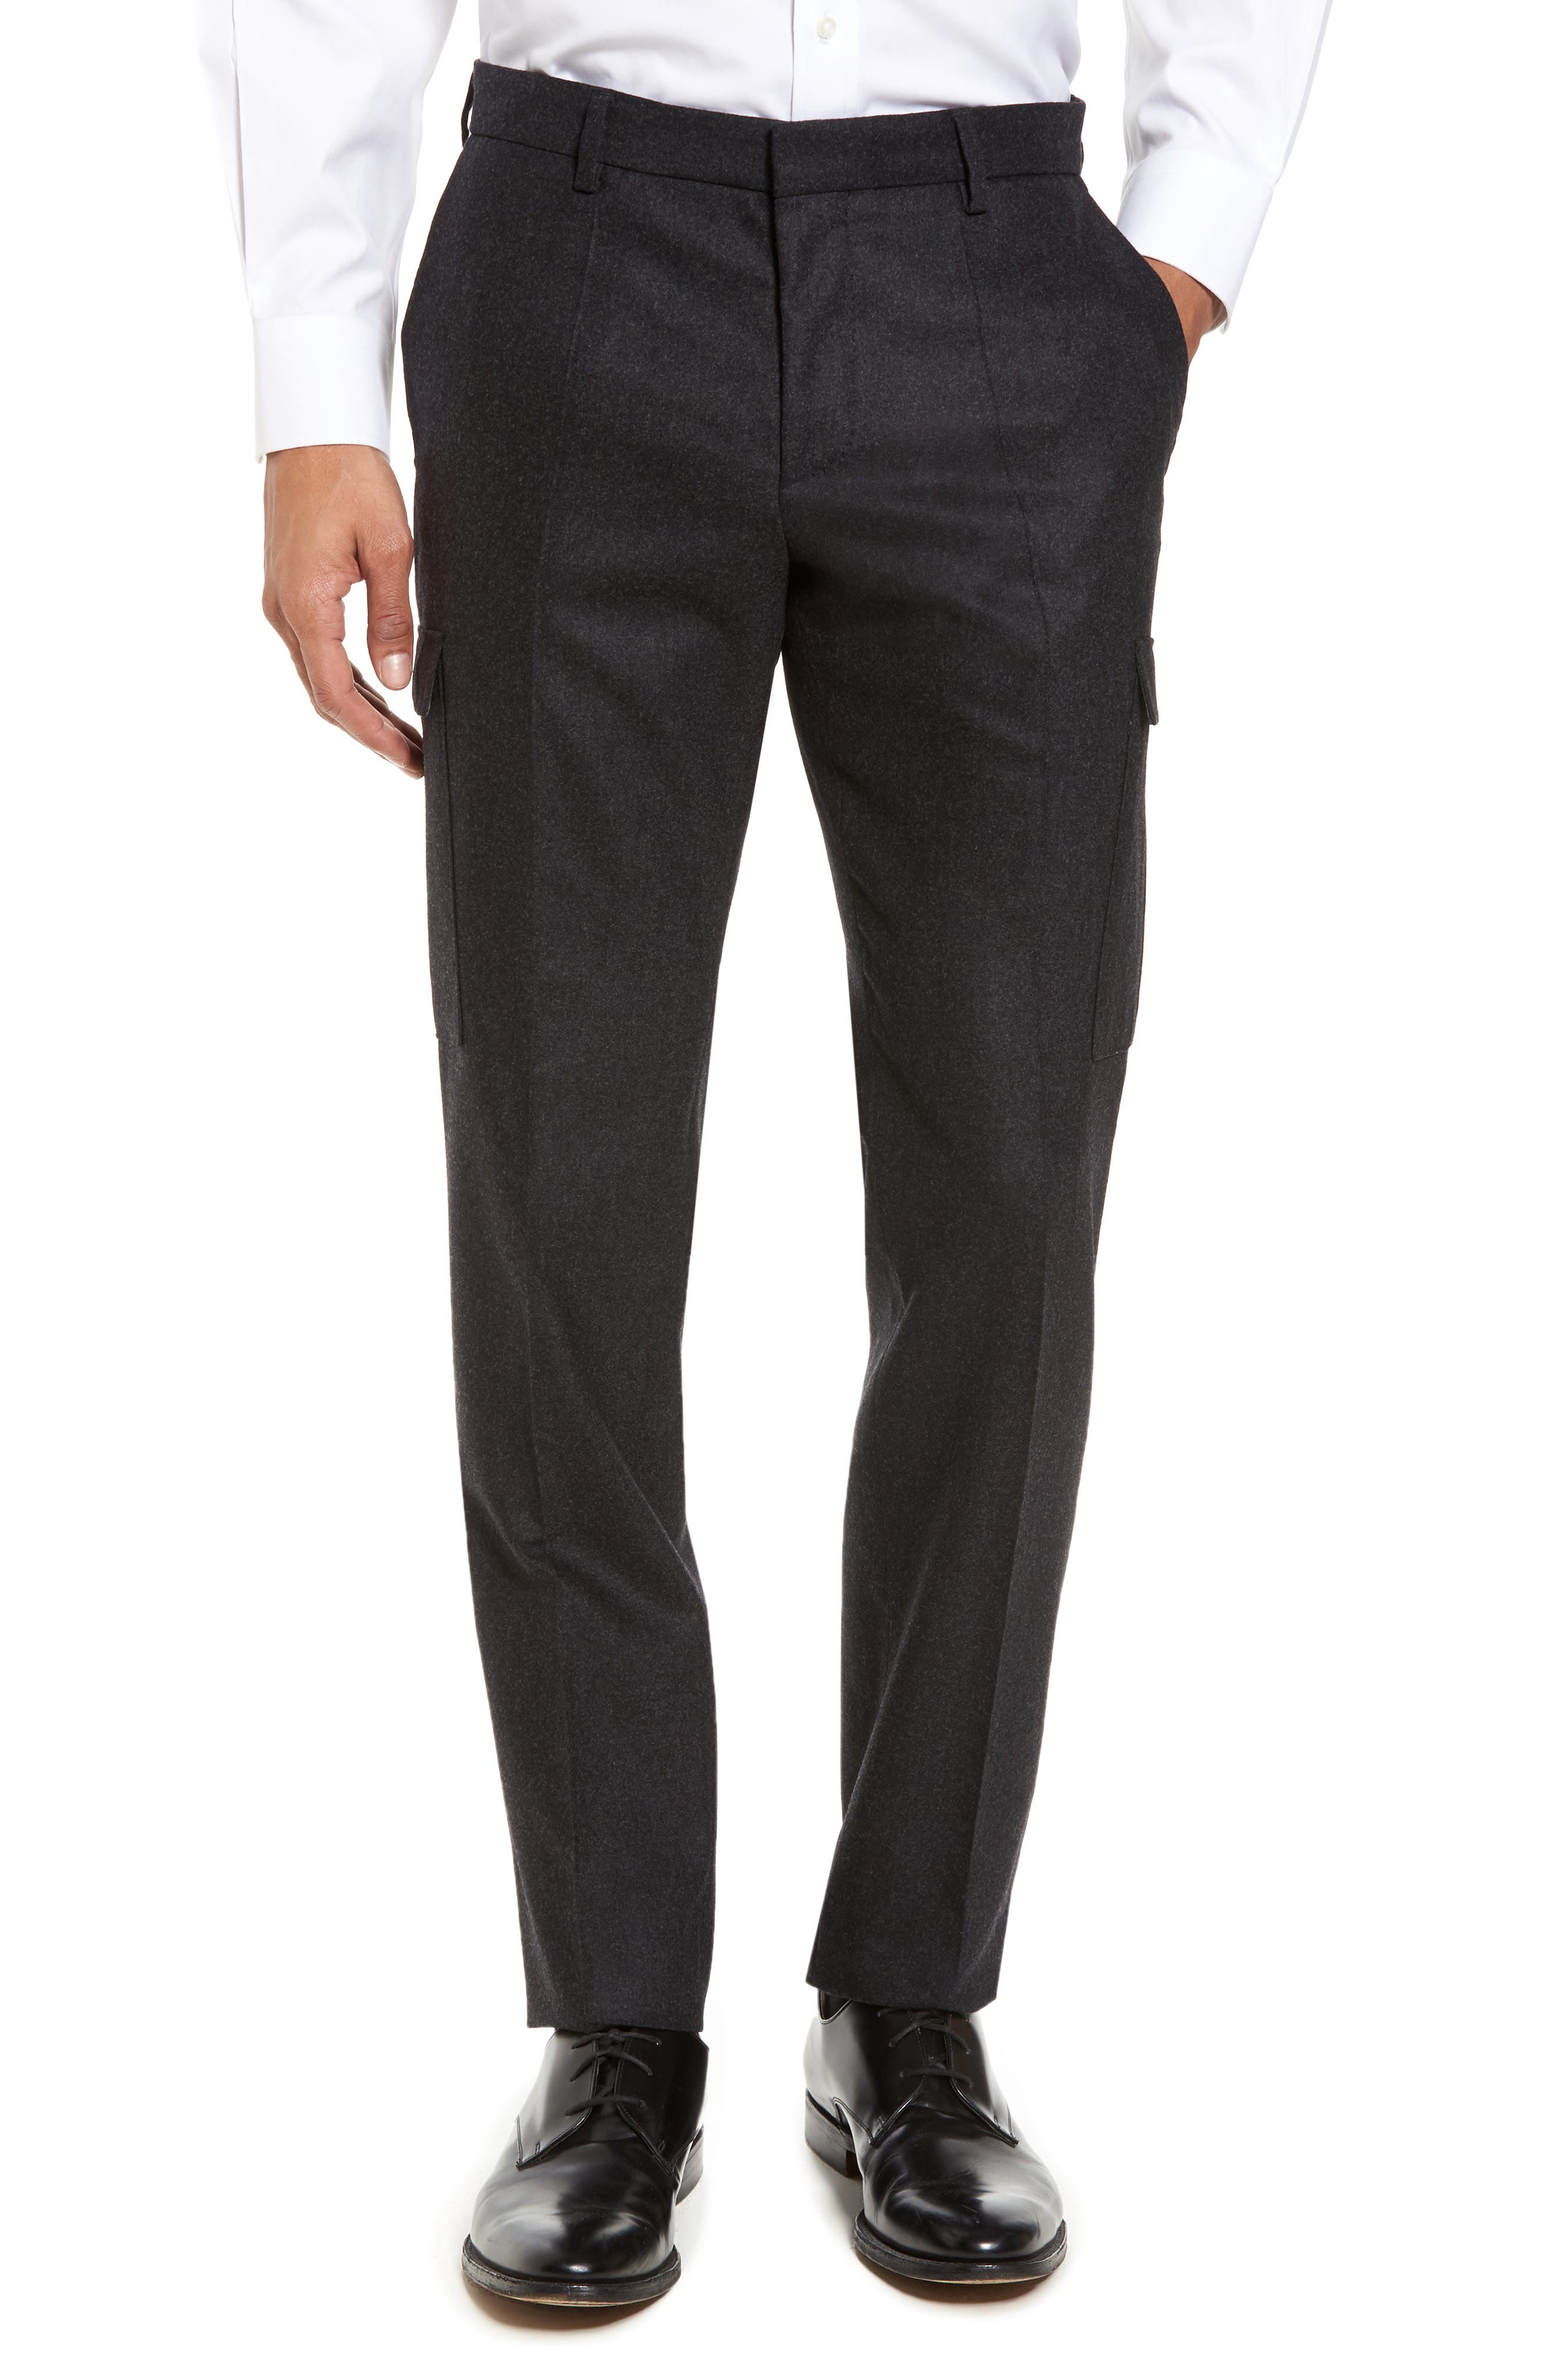 Balour Flat Front Stretch Solid Wool & Cashmere Cargo Trousers,                             Main thumbnail 1, color,